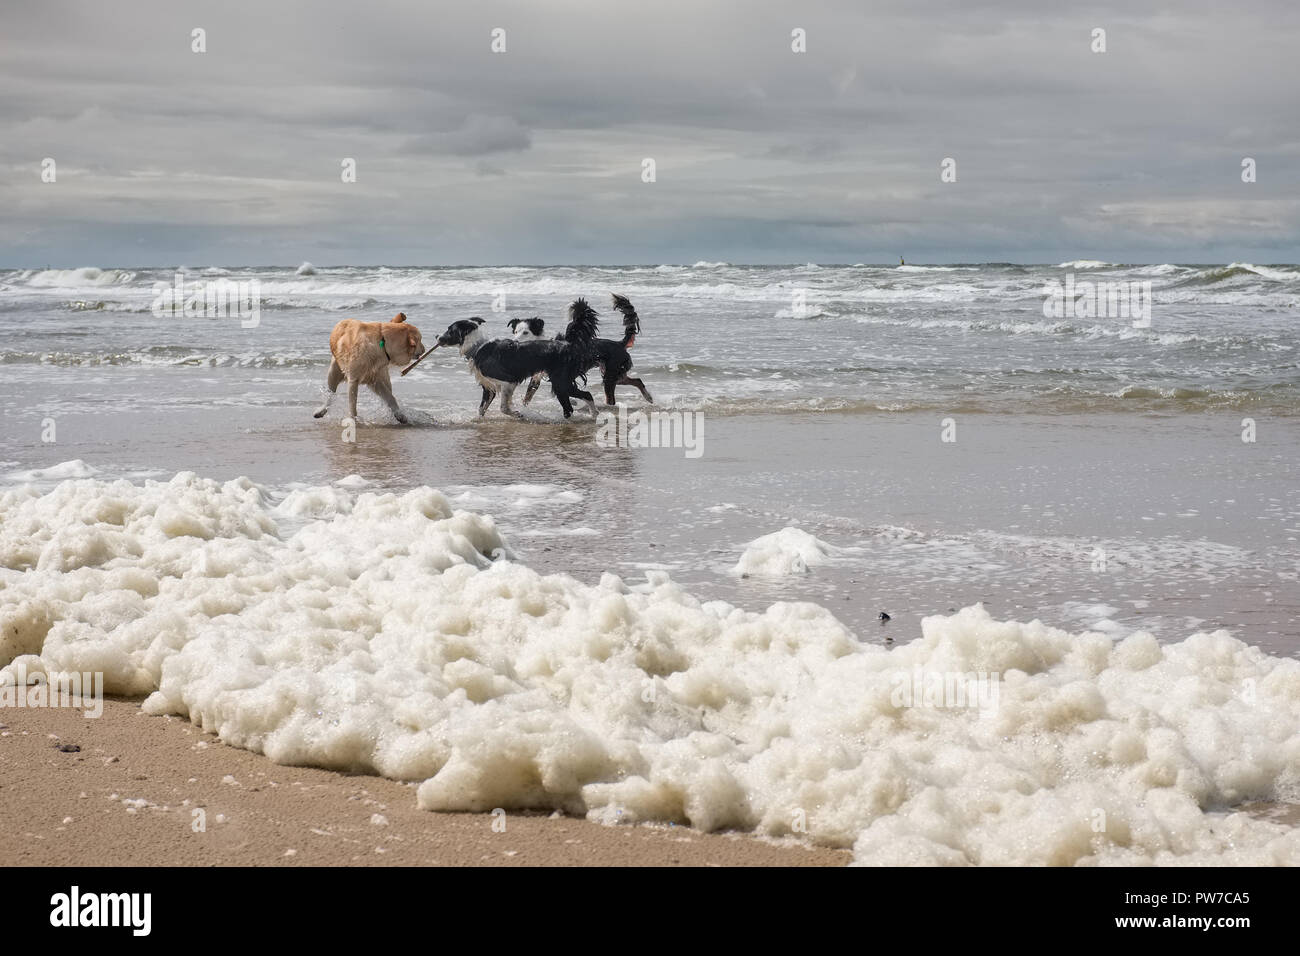 Three dogs playing on a beach covered by Algae Stock Photo